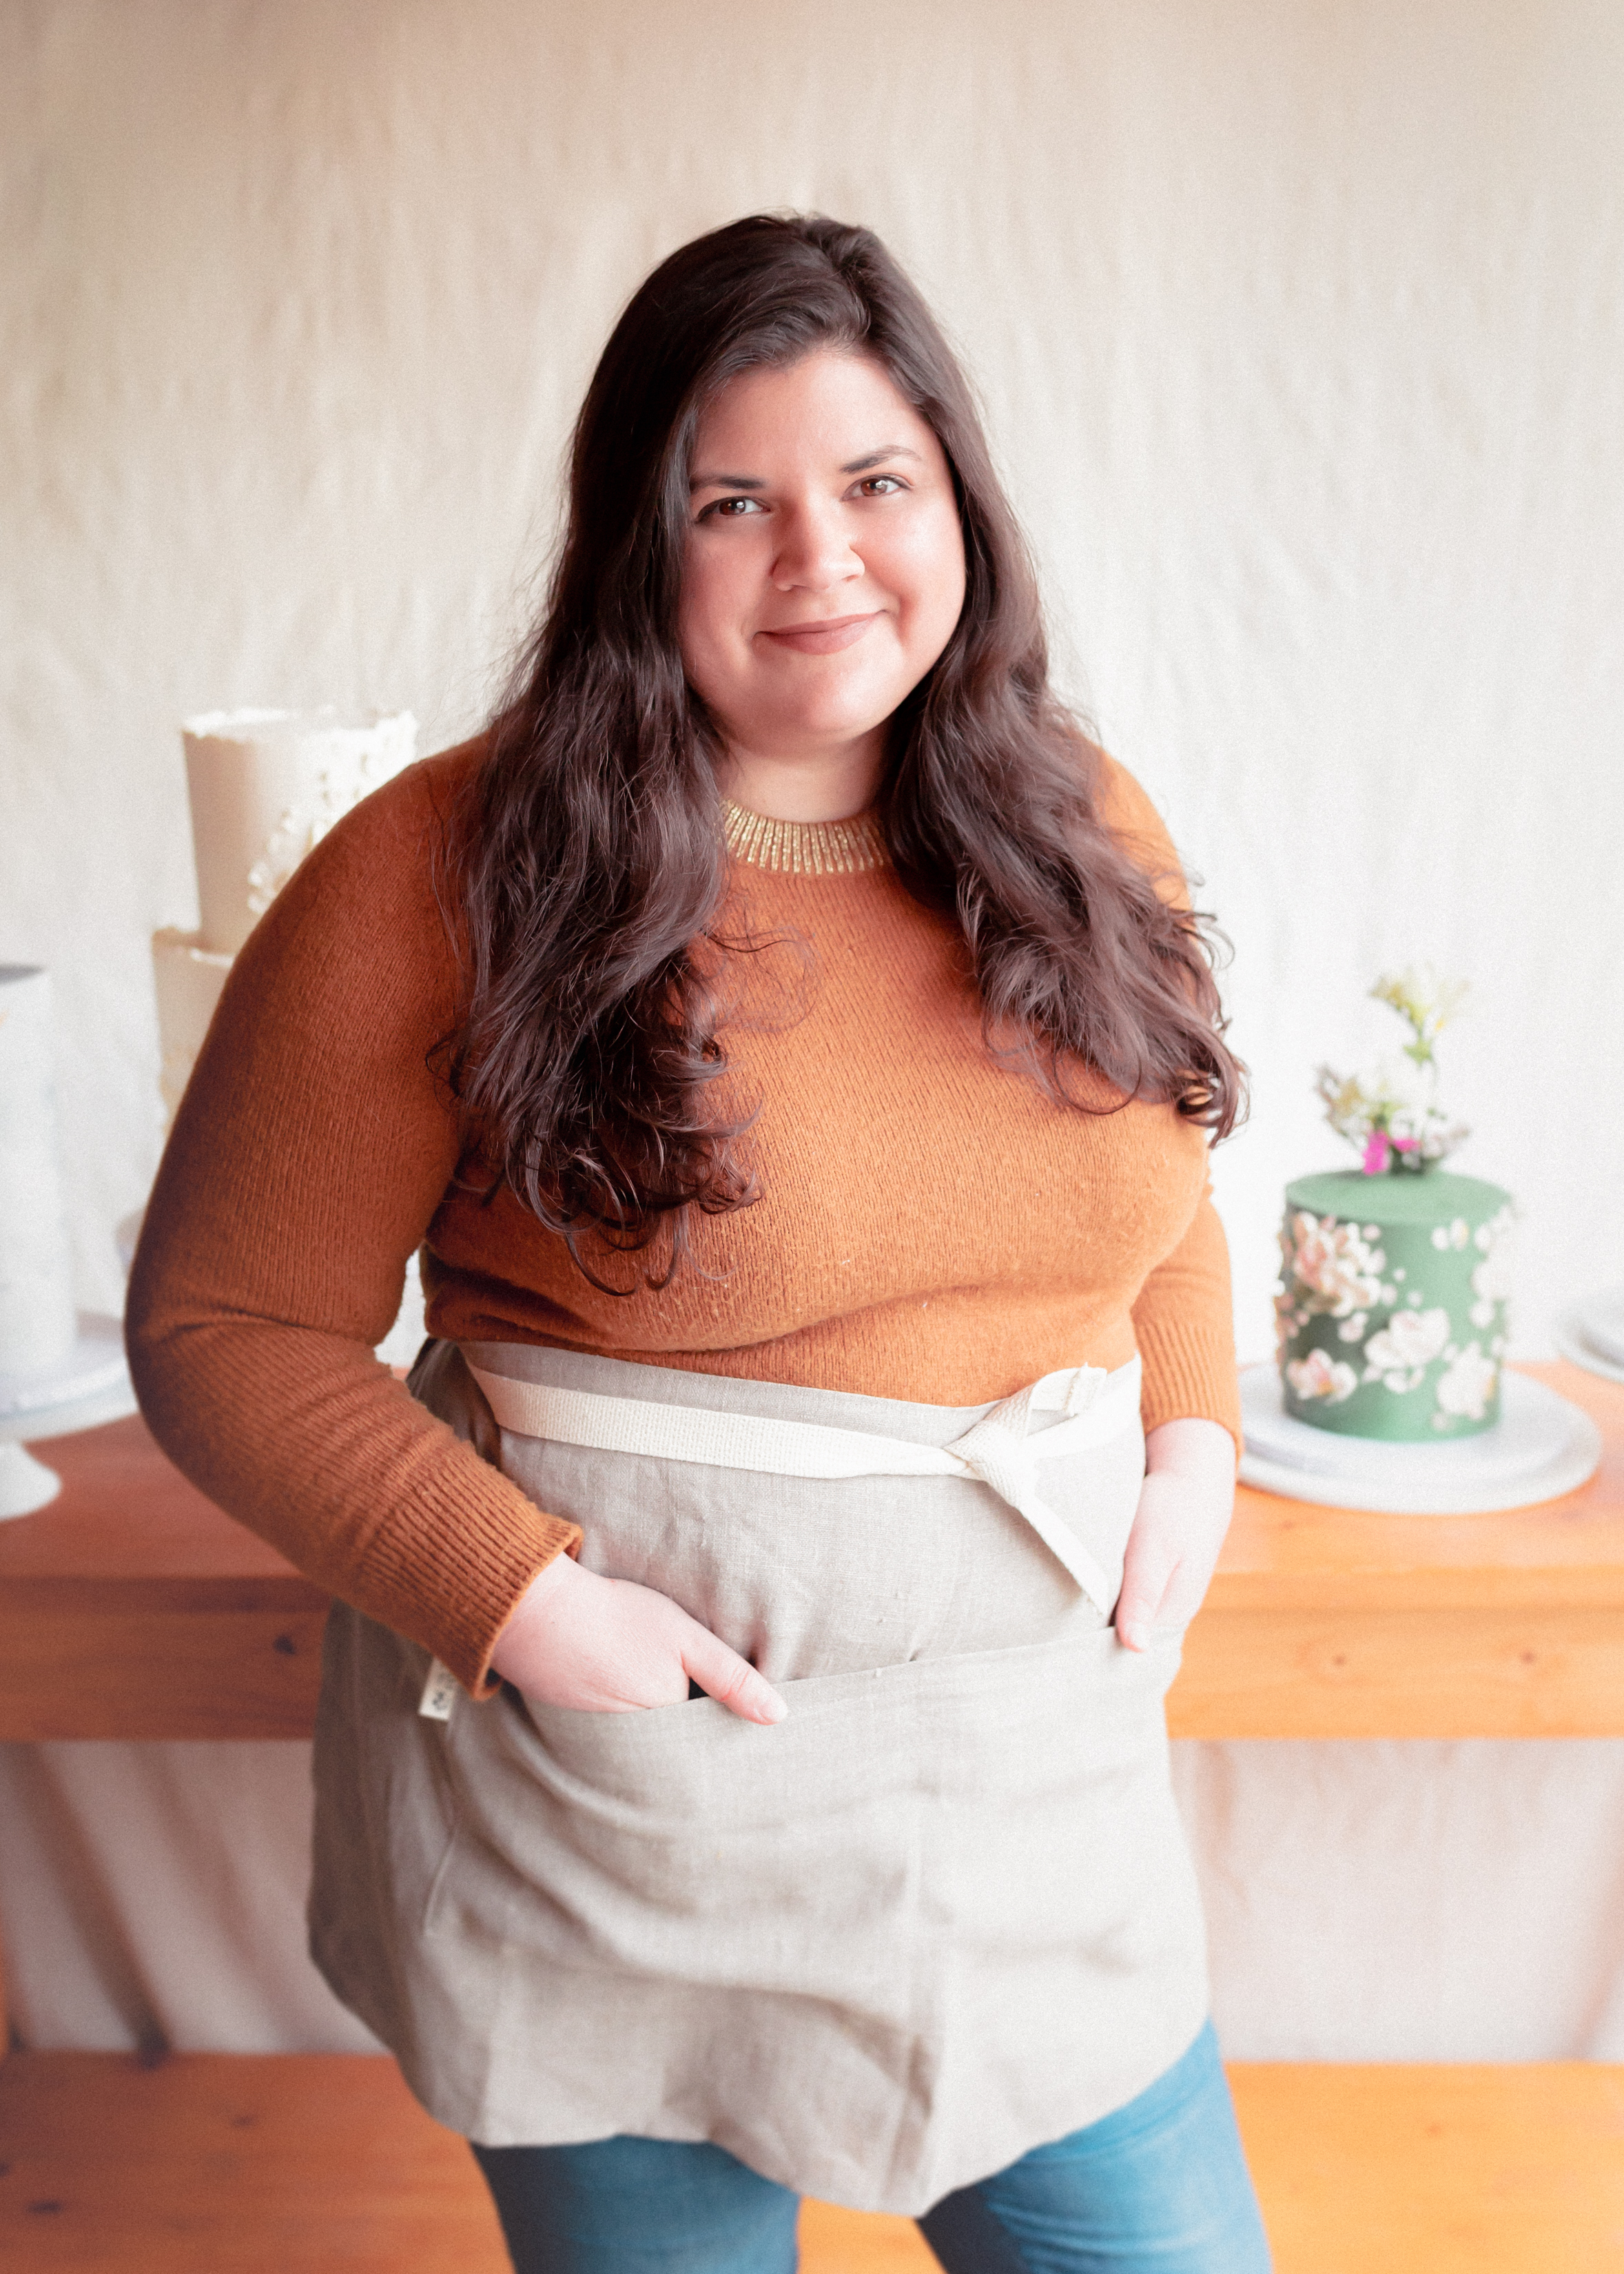 Becca | Head Baker - After a fulfilling career as a early childhood educator and birth doula, Becca was next planning on a career move into Nursing. She instead made the choice to listen to intuition and she enrolled in Seattle Culinary Academy where these two solo artists met and laid the groundwork for Lady Grey.